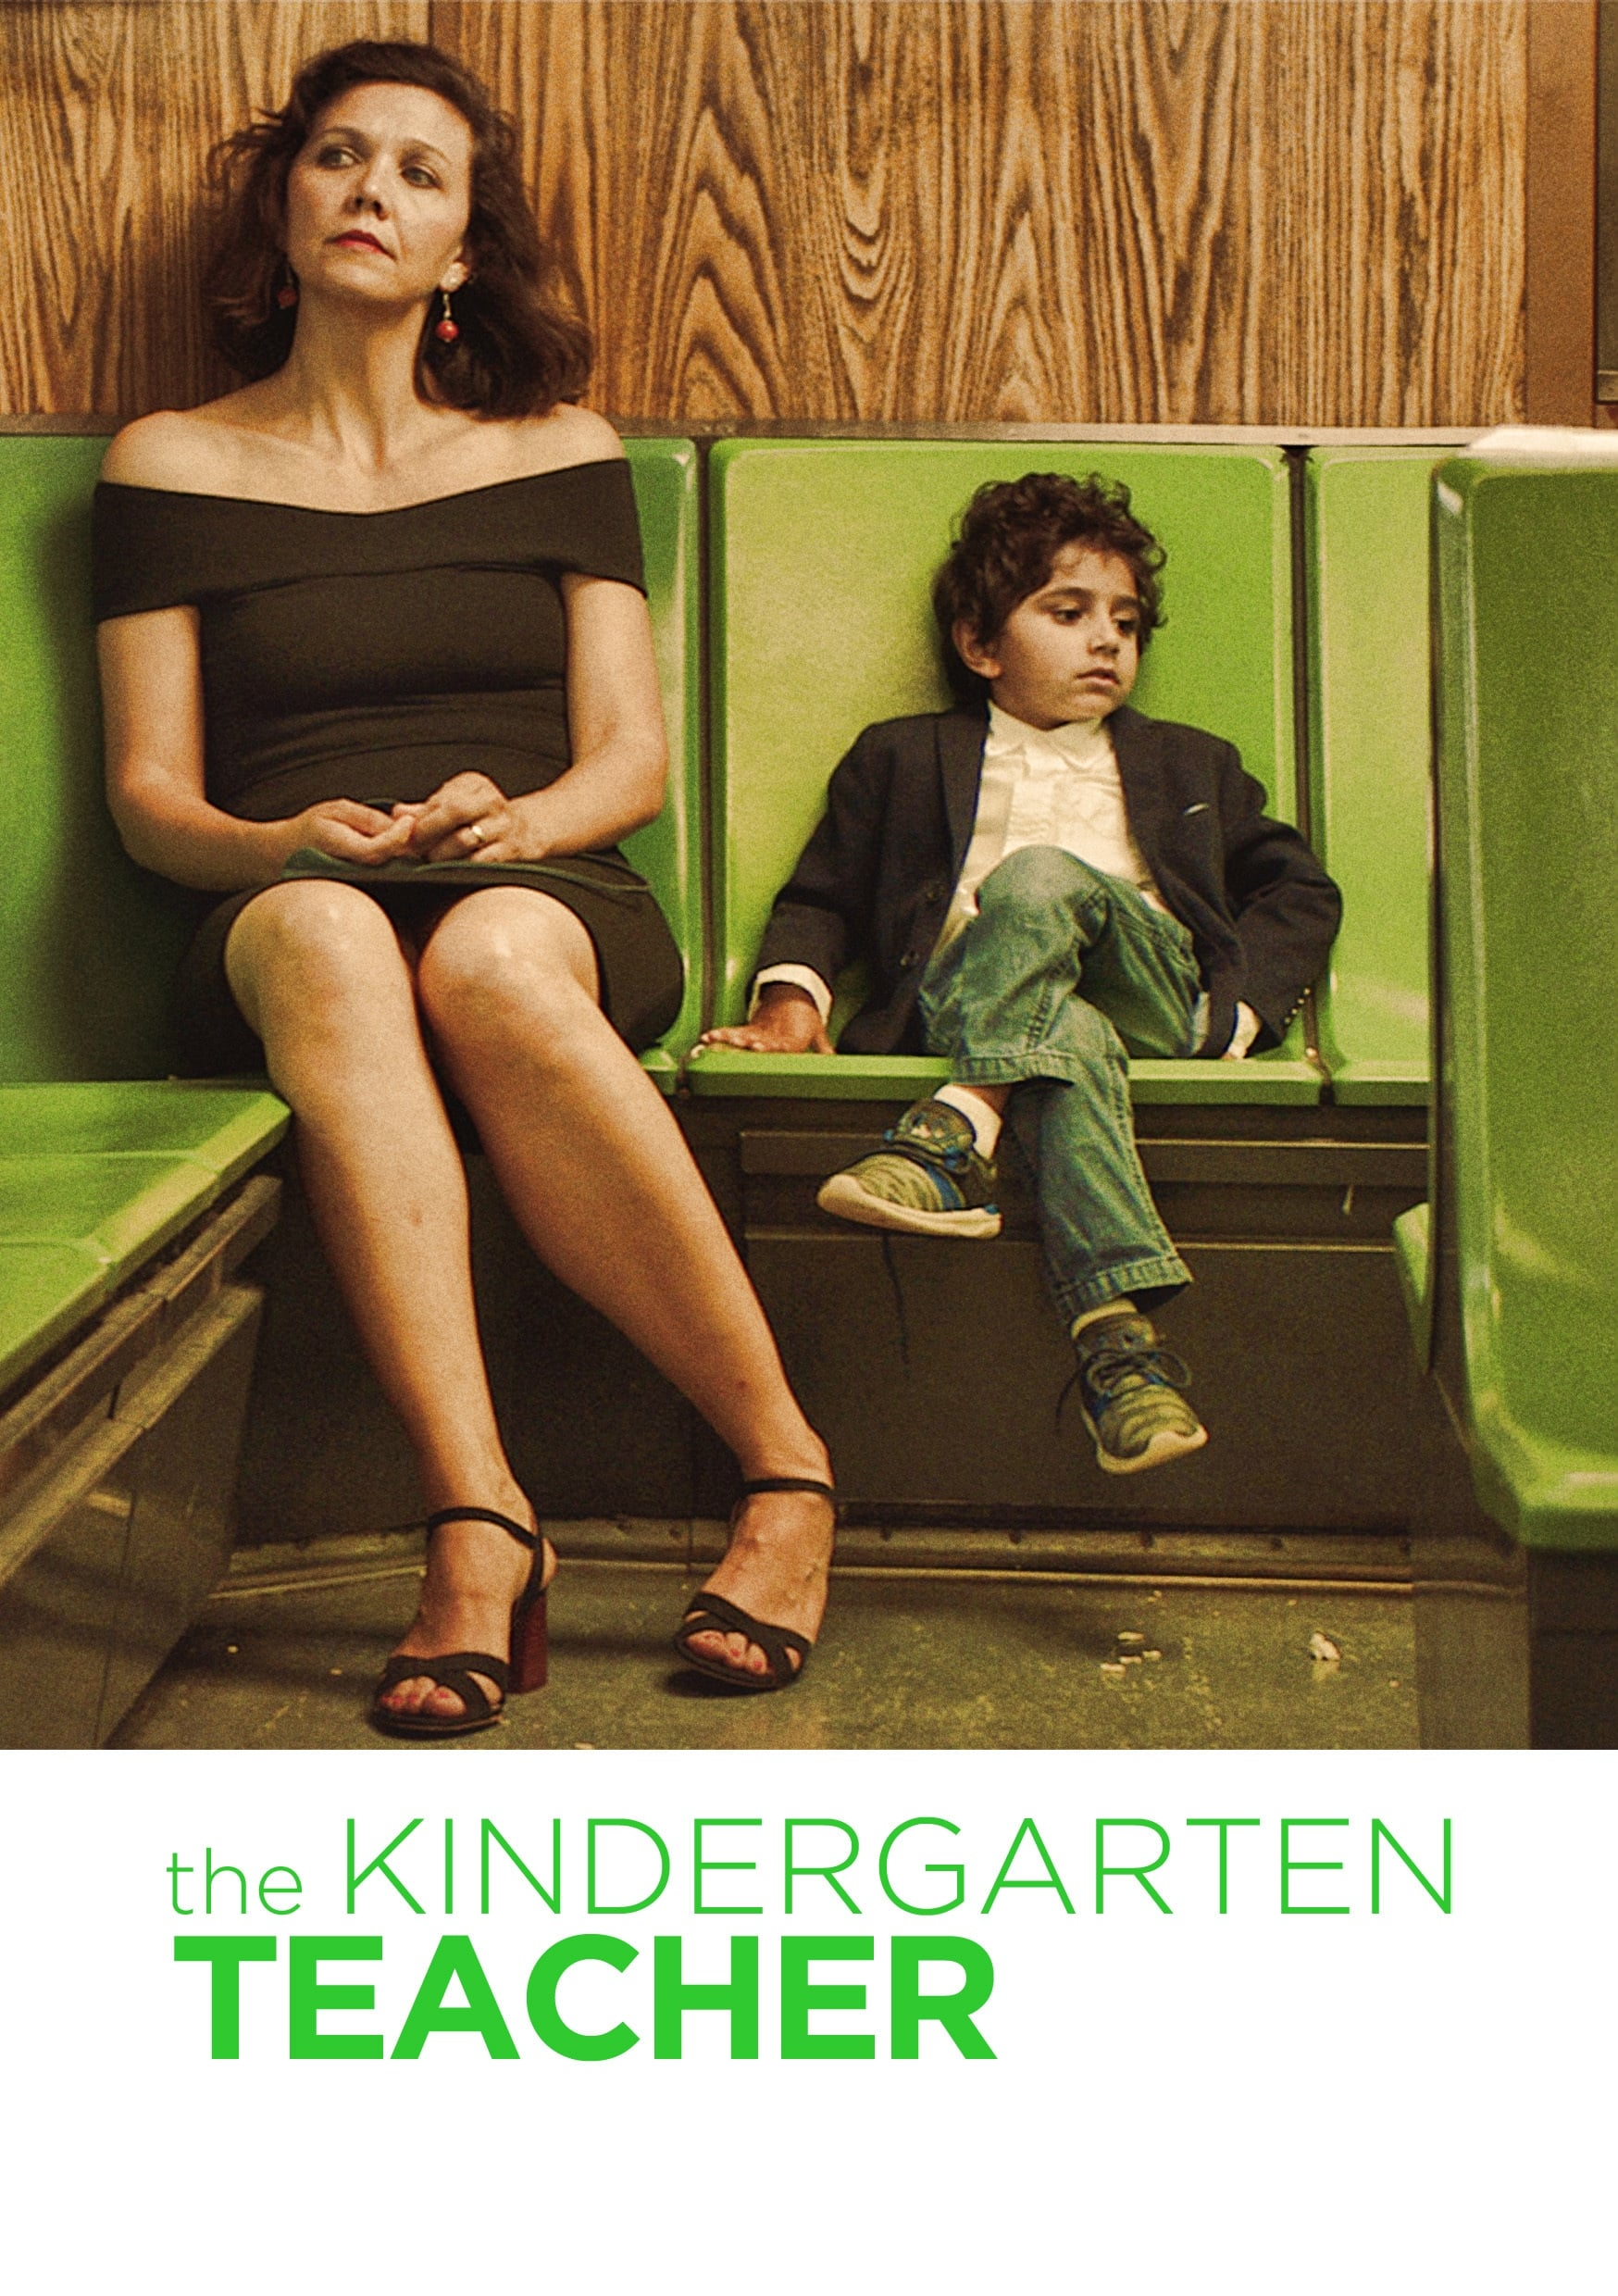 Poster and image movie Film The Kindergarten Teacher - The Kindergarten Teacher 2018